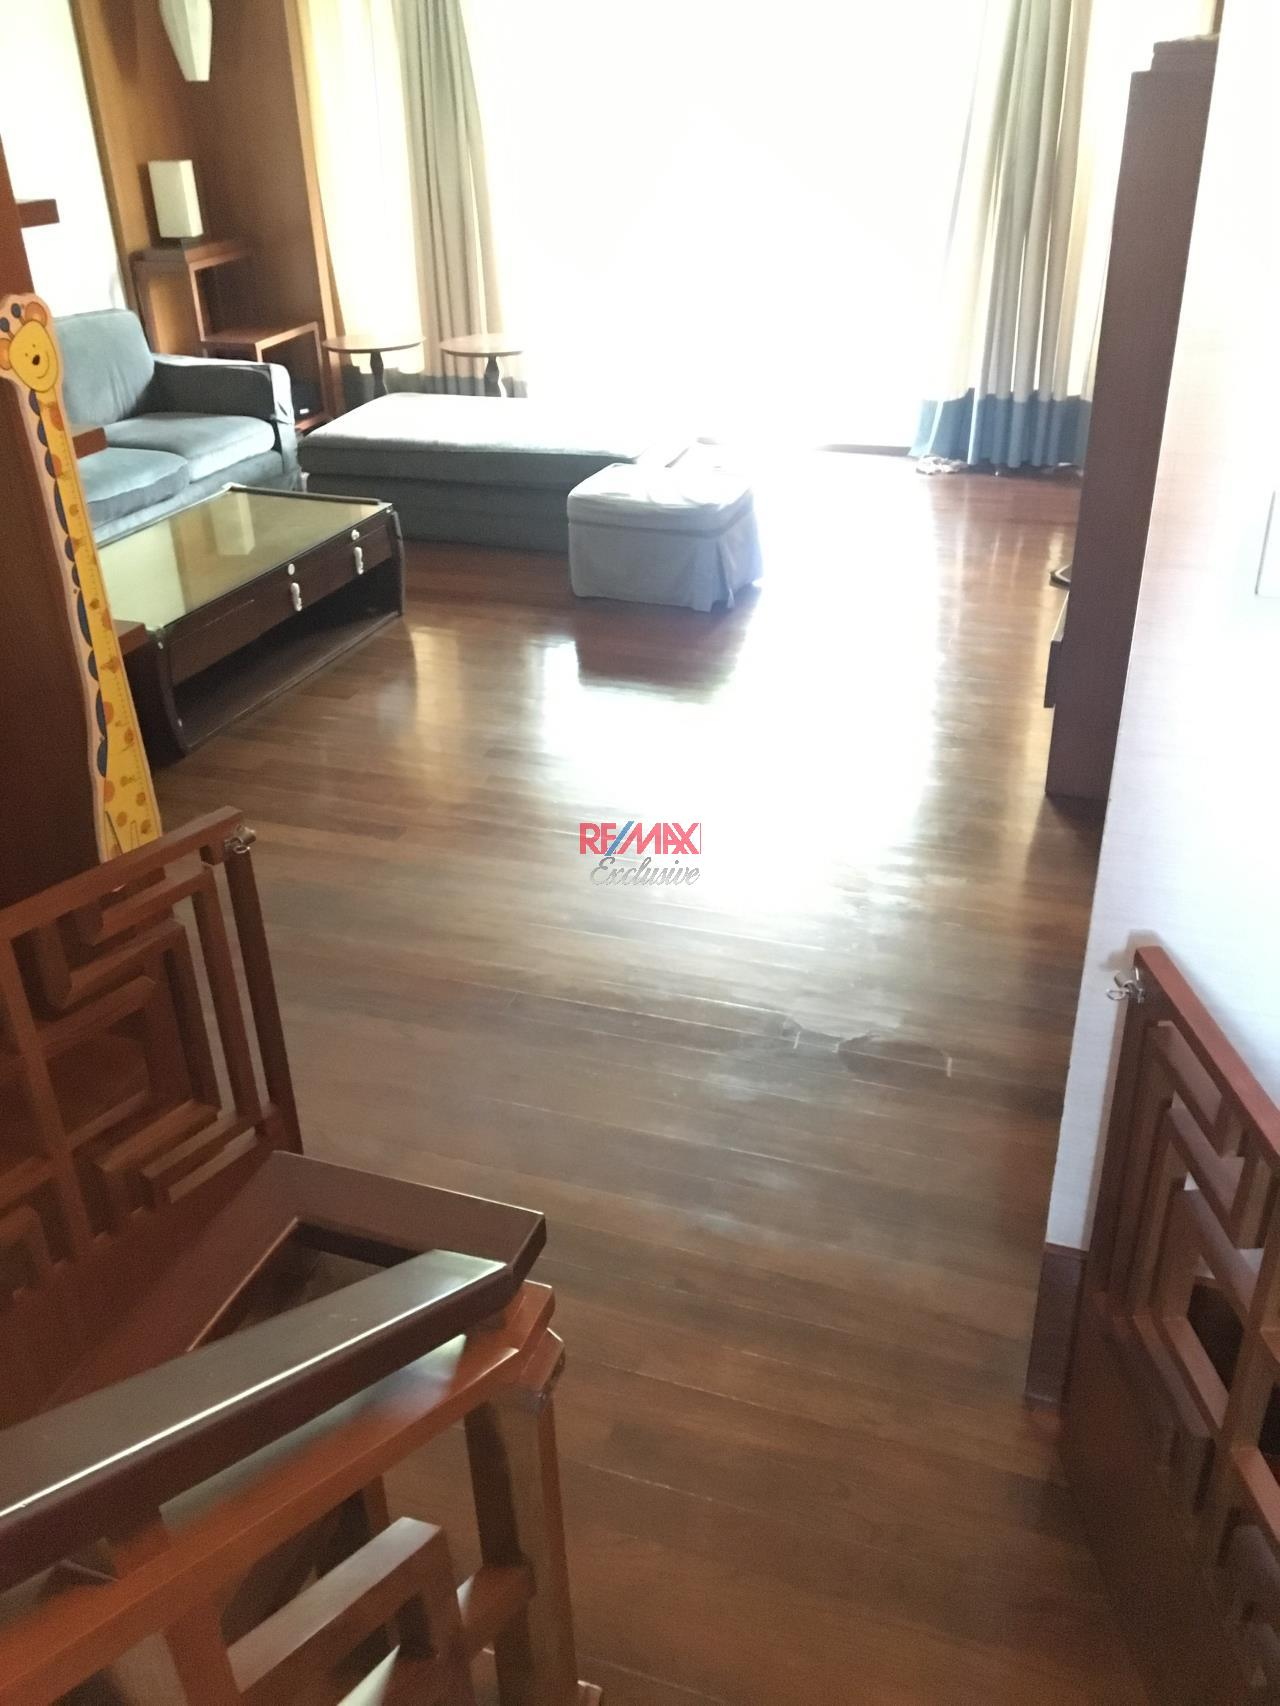 RE/MAX Exclusive Agency's Townhouse in Thonglor 3 bedroom 5 bathroom  35